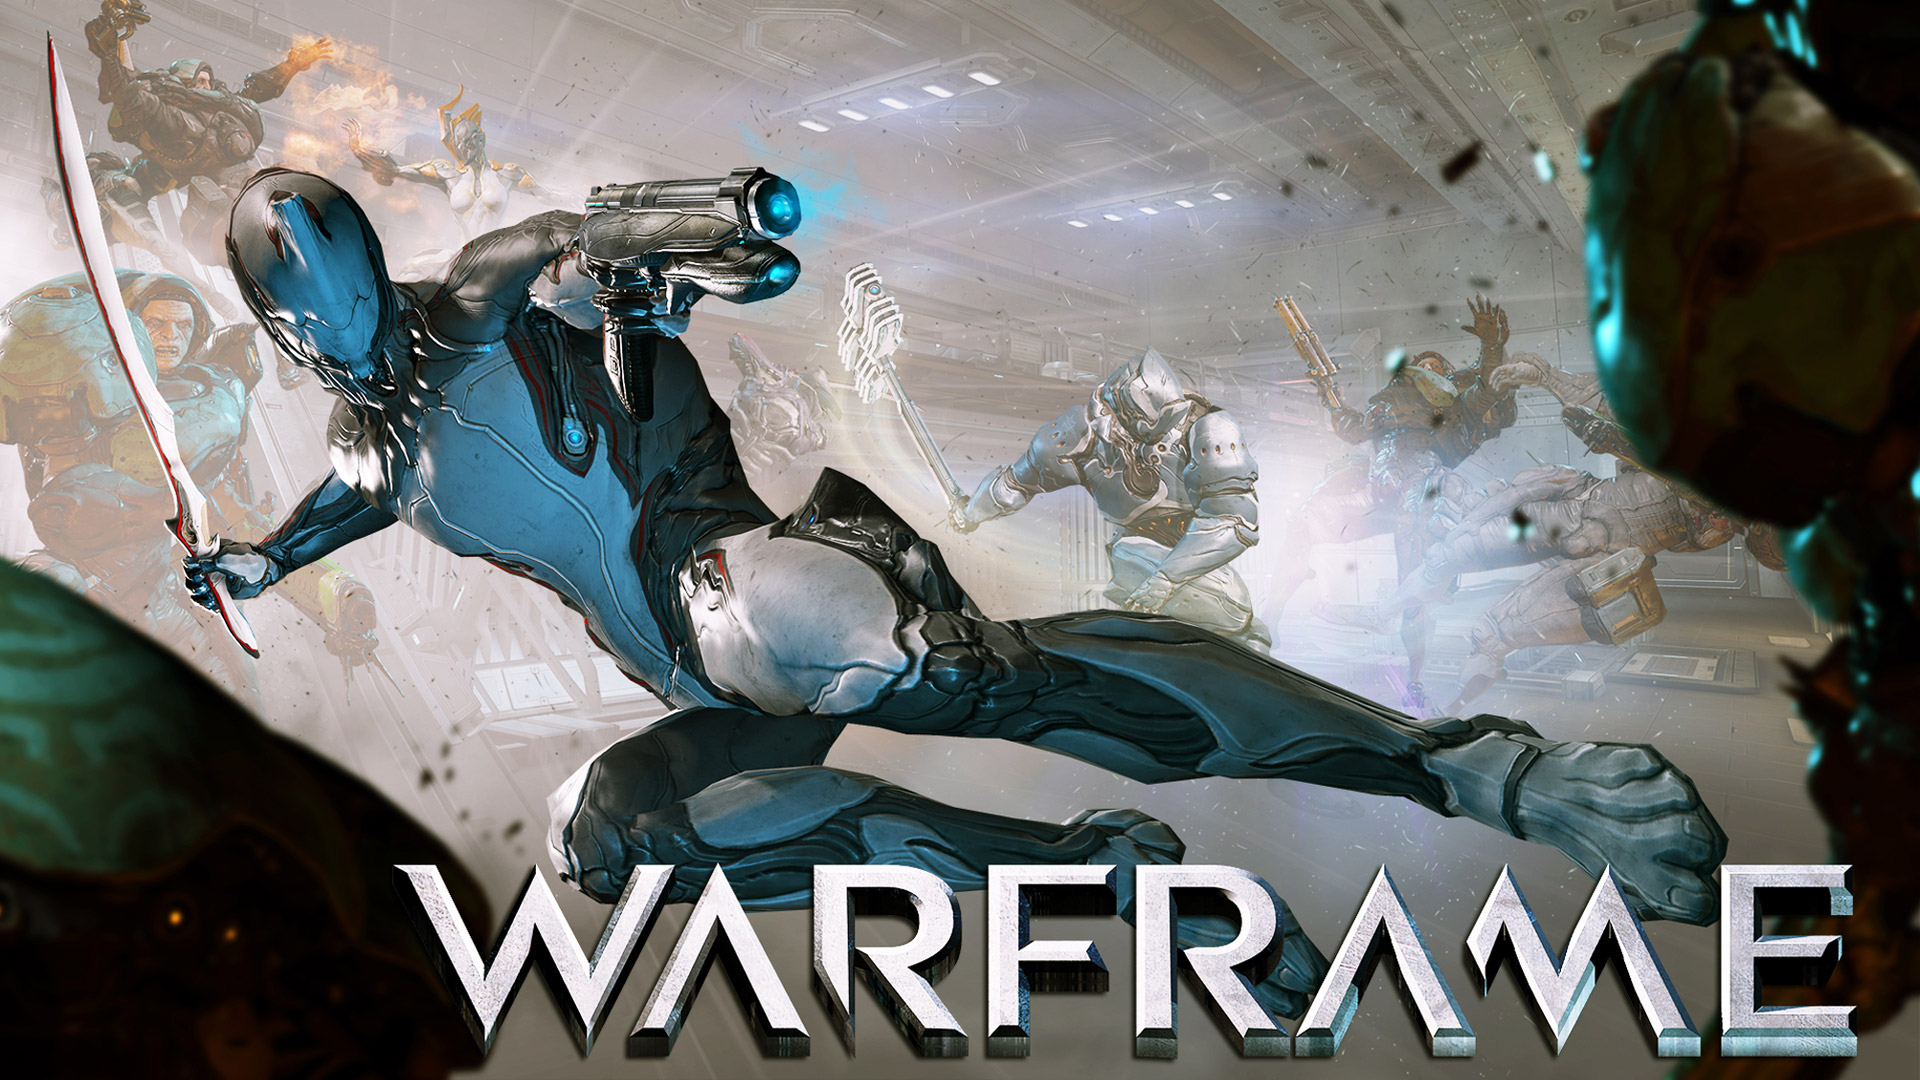 Warframe wallpaper 2